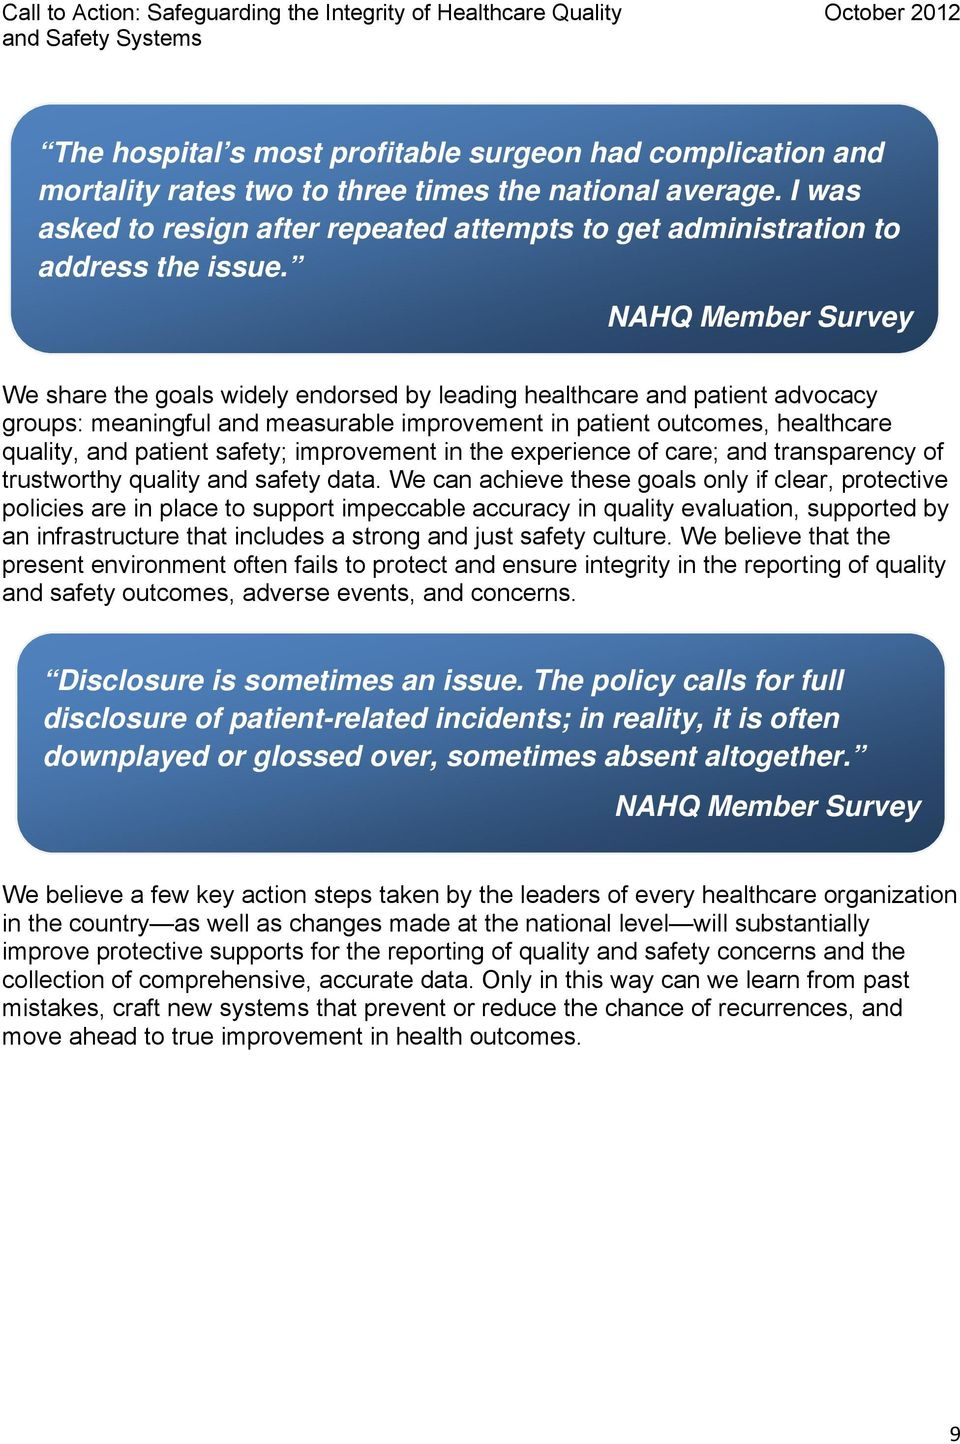 NAHQ Member Survey We share the goals widely endorsed by leading healthcare and patient advocacy groups: meaningful and measurable improvement in patient outcomes, healthcare quality, and patient